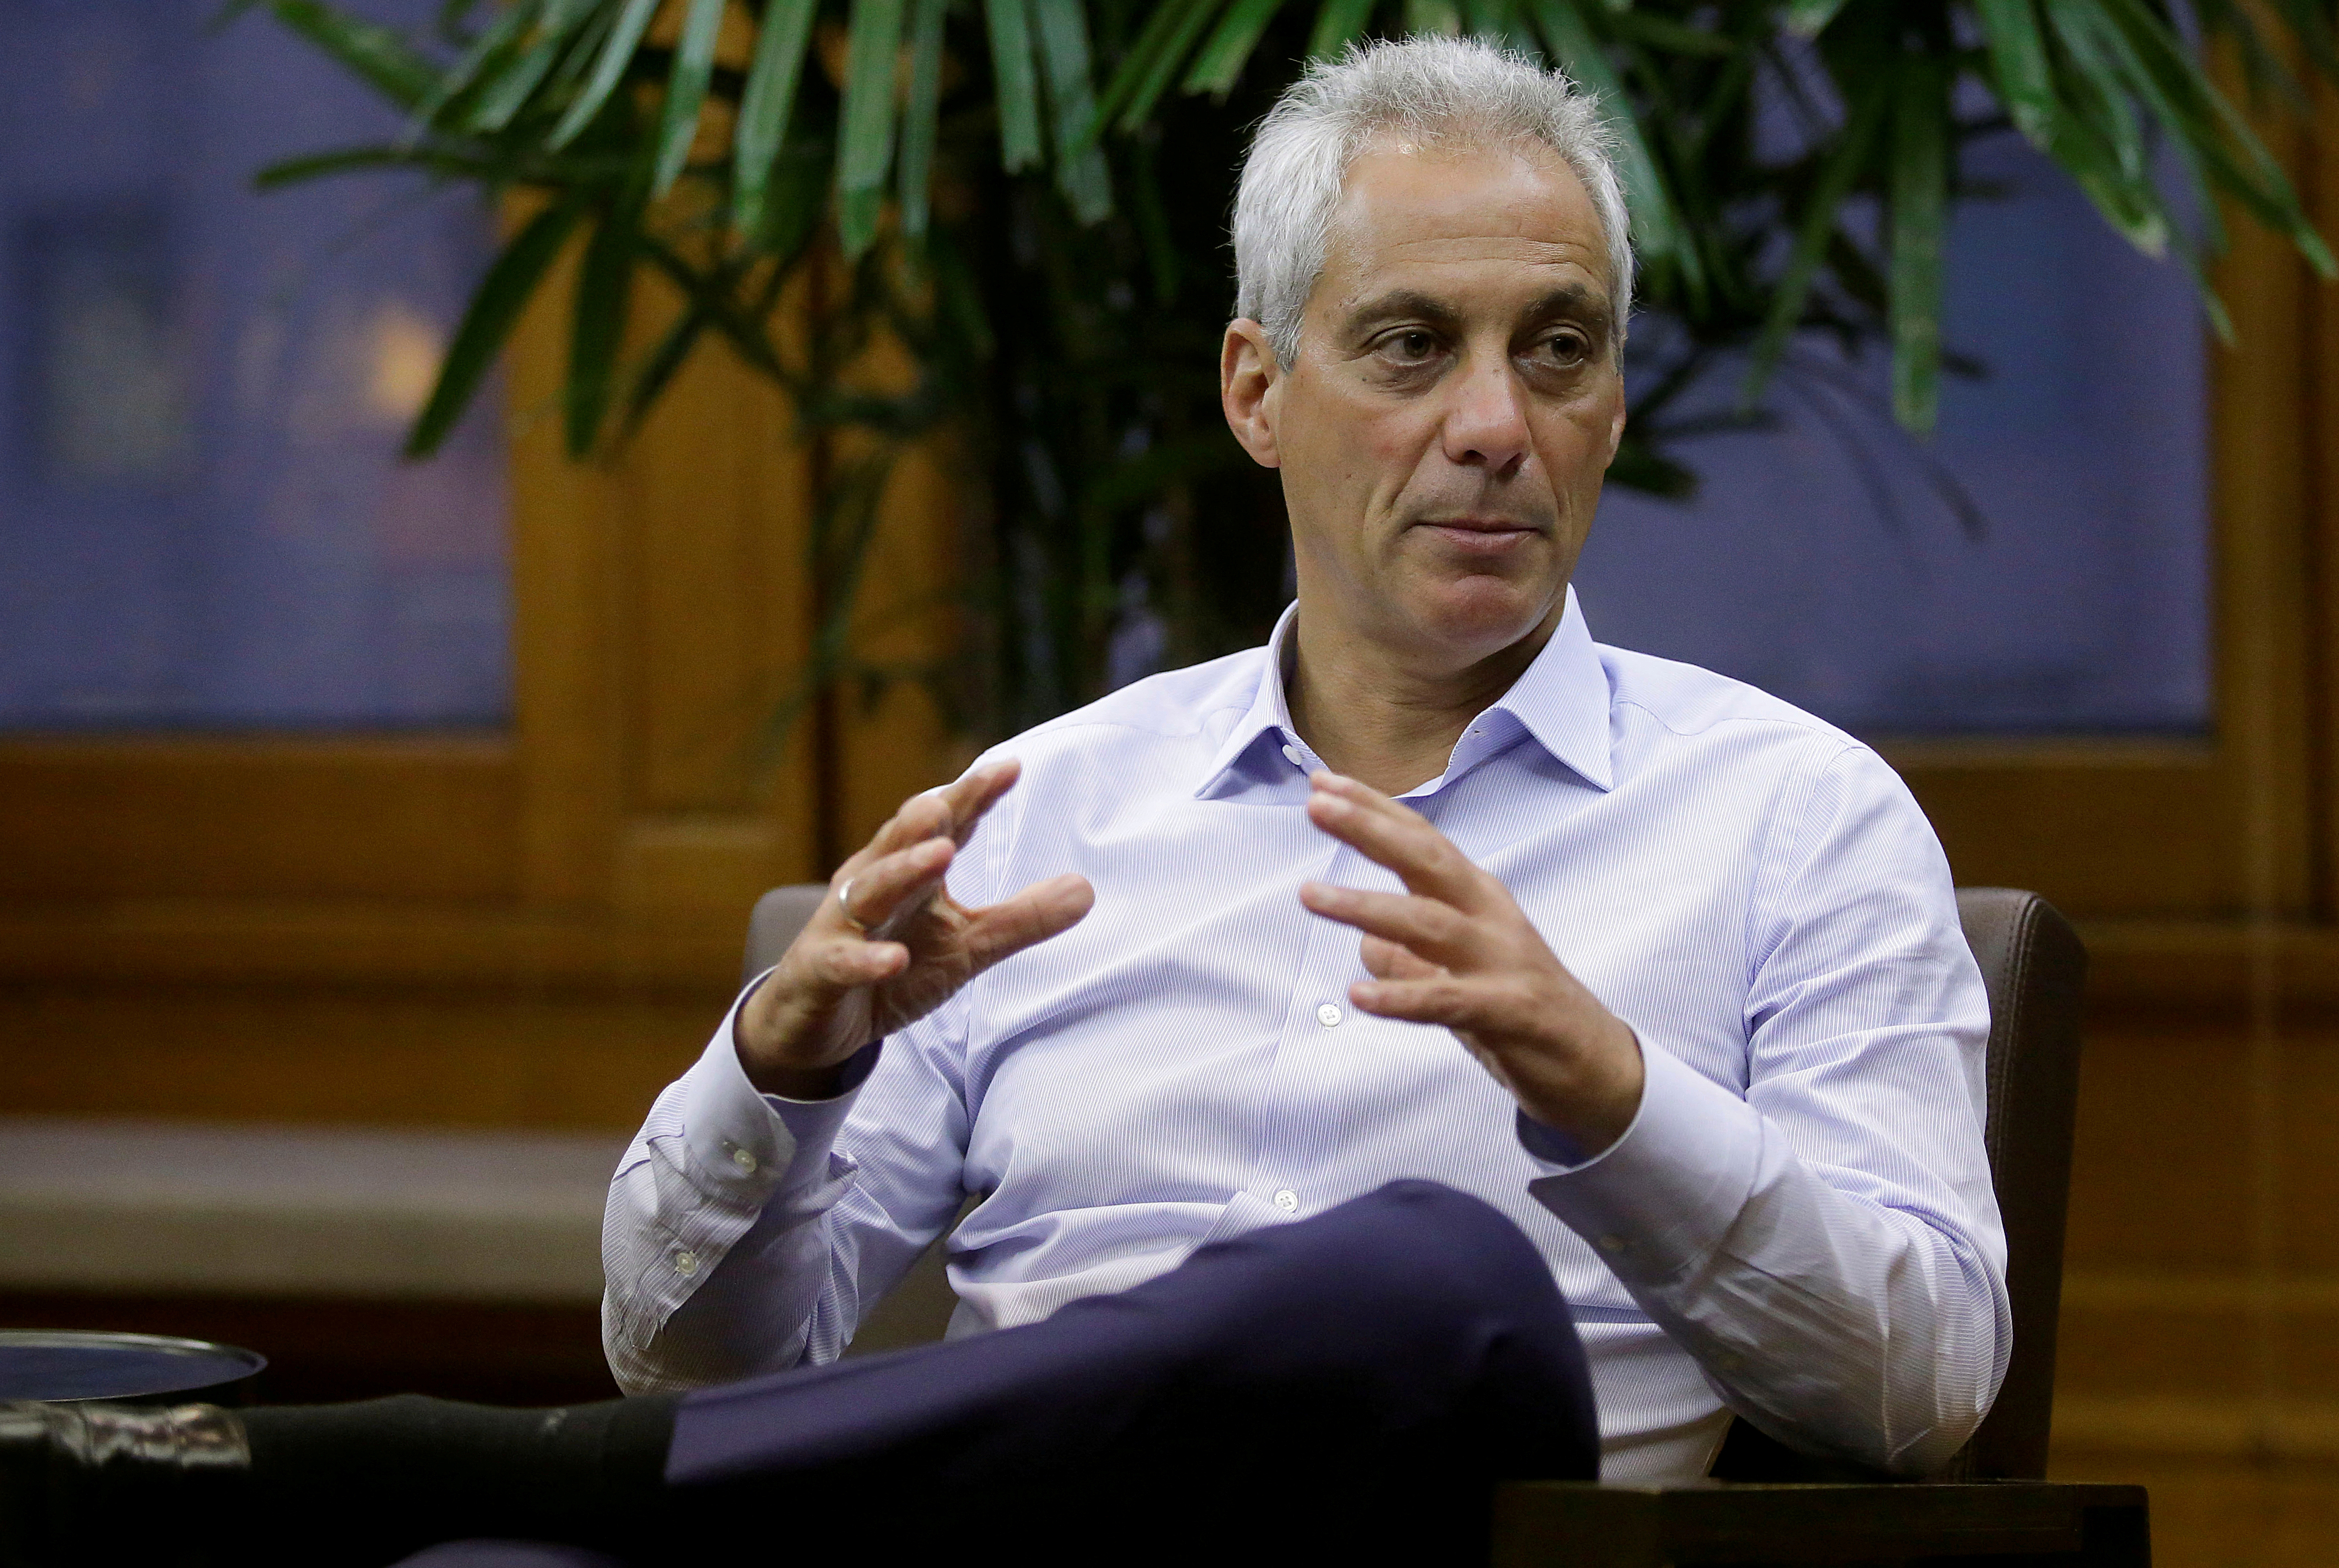 FILE PHOTO: Chicago Mayor Rahm Emanuel speaks during an interview at City Hall in Chicago, Illinois, U.S. June 14, 2017. REUTERS/Joshua Lott/File Photo